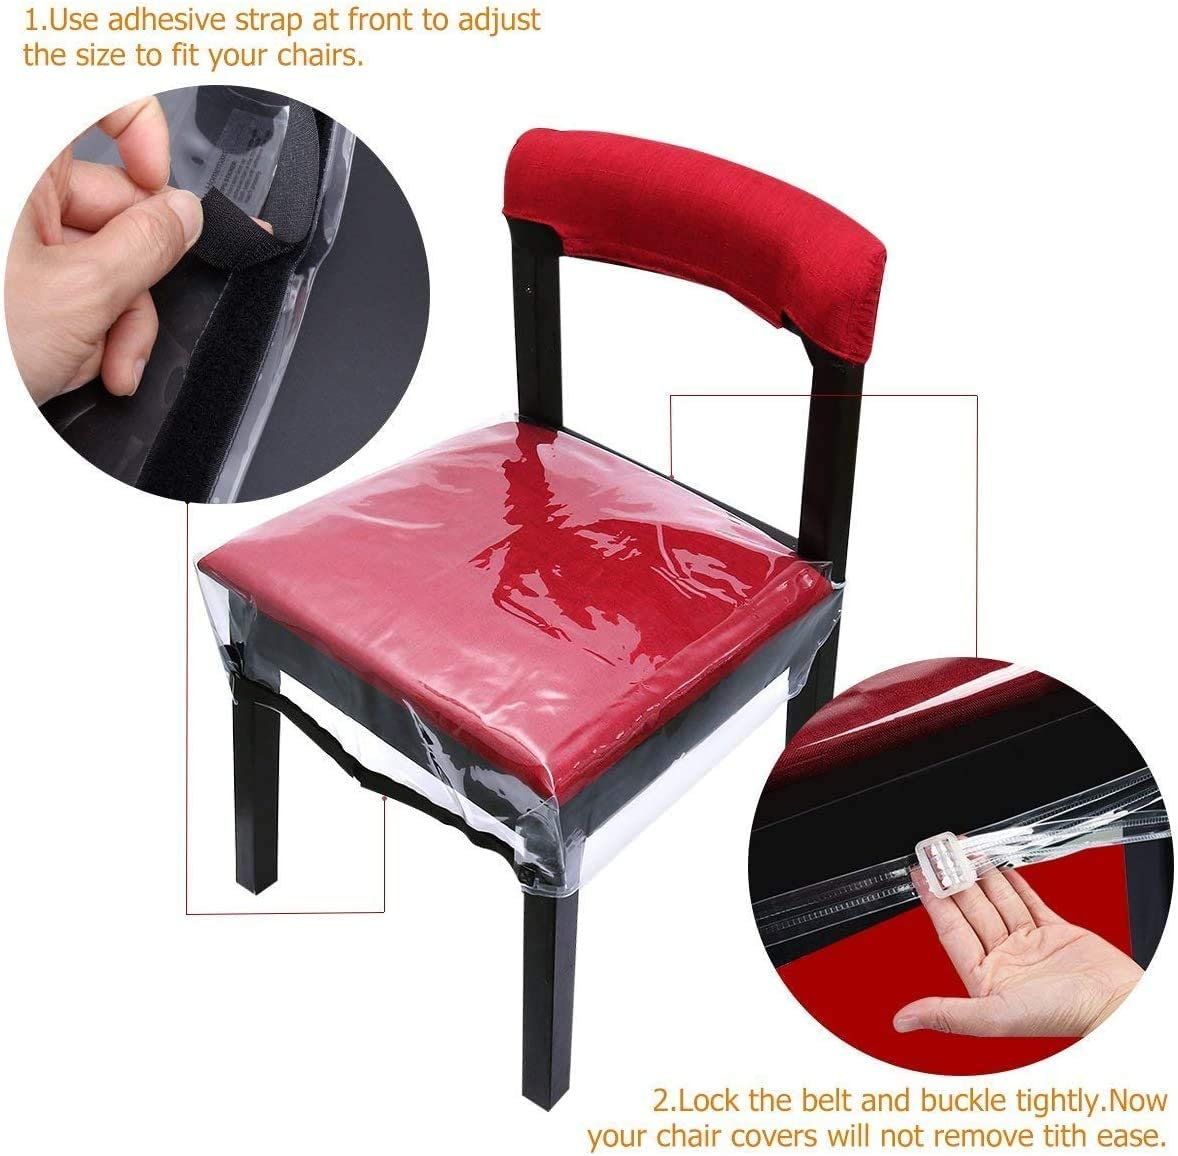 Plastic Dining Chair Covers Protectors, Adjustable Belt Strap Dining Chair Cover, 78x77x11.5cm, 2 Pack